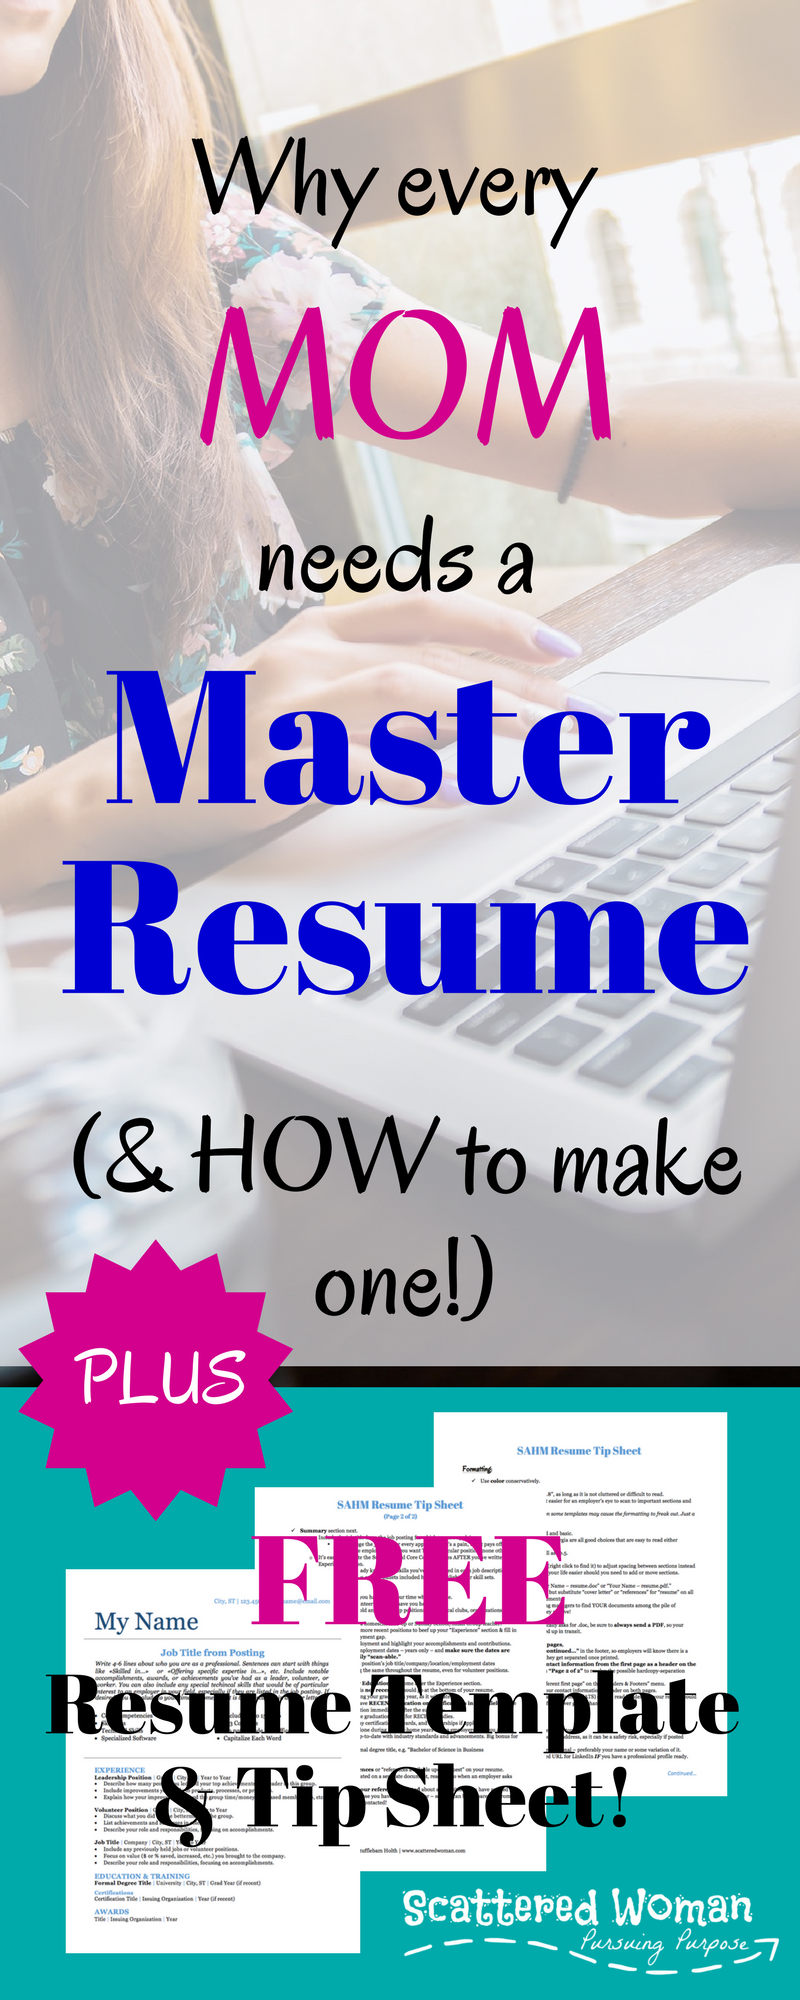 Why Every Mom Needs a Master Resume (& How to Make One